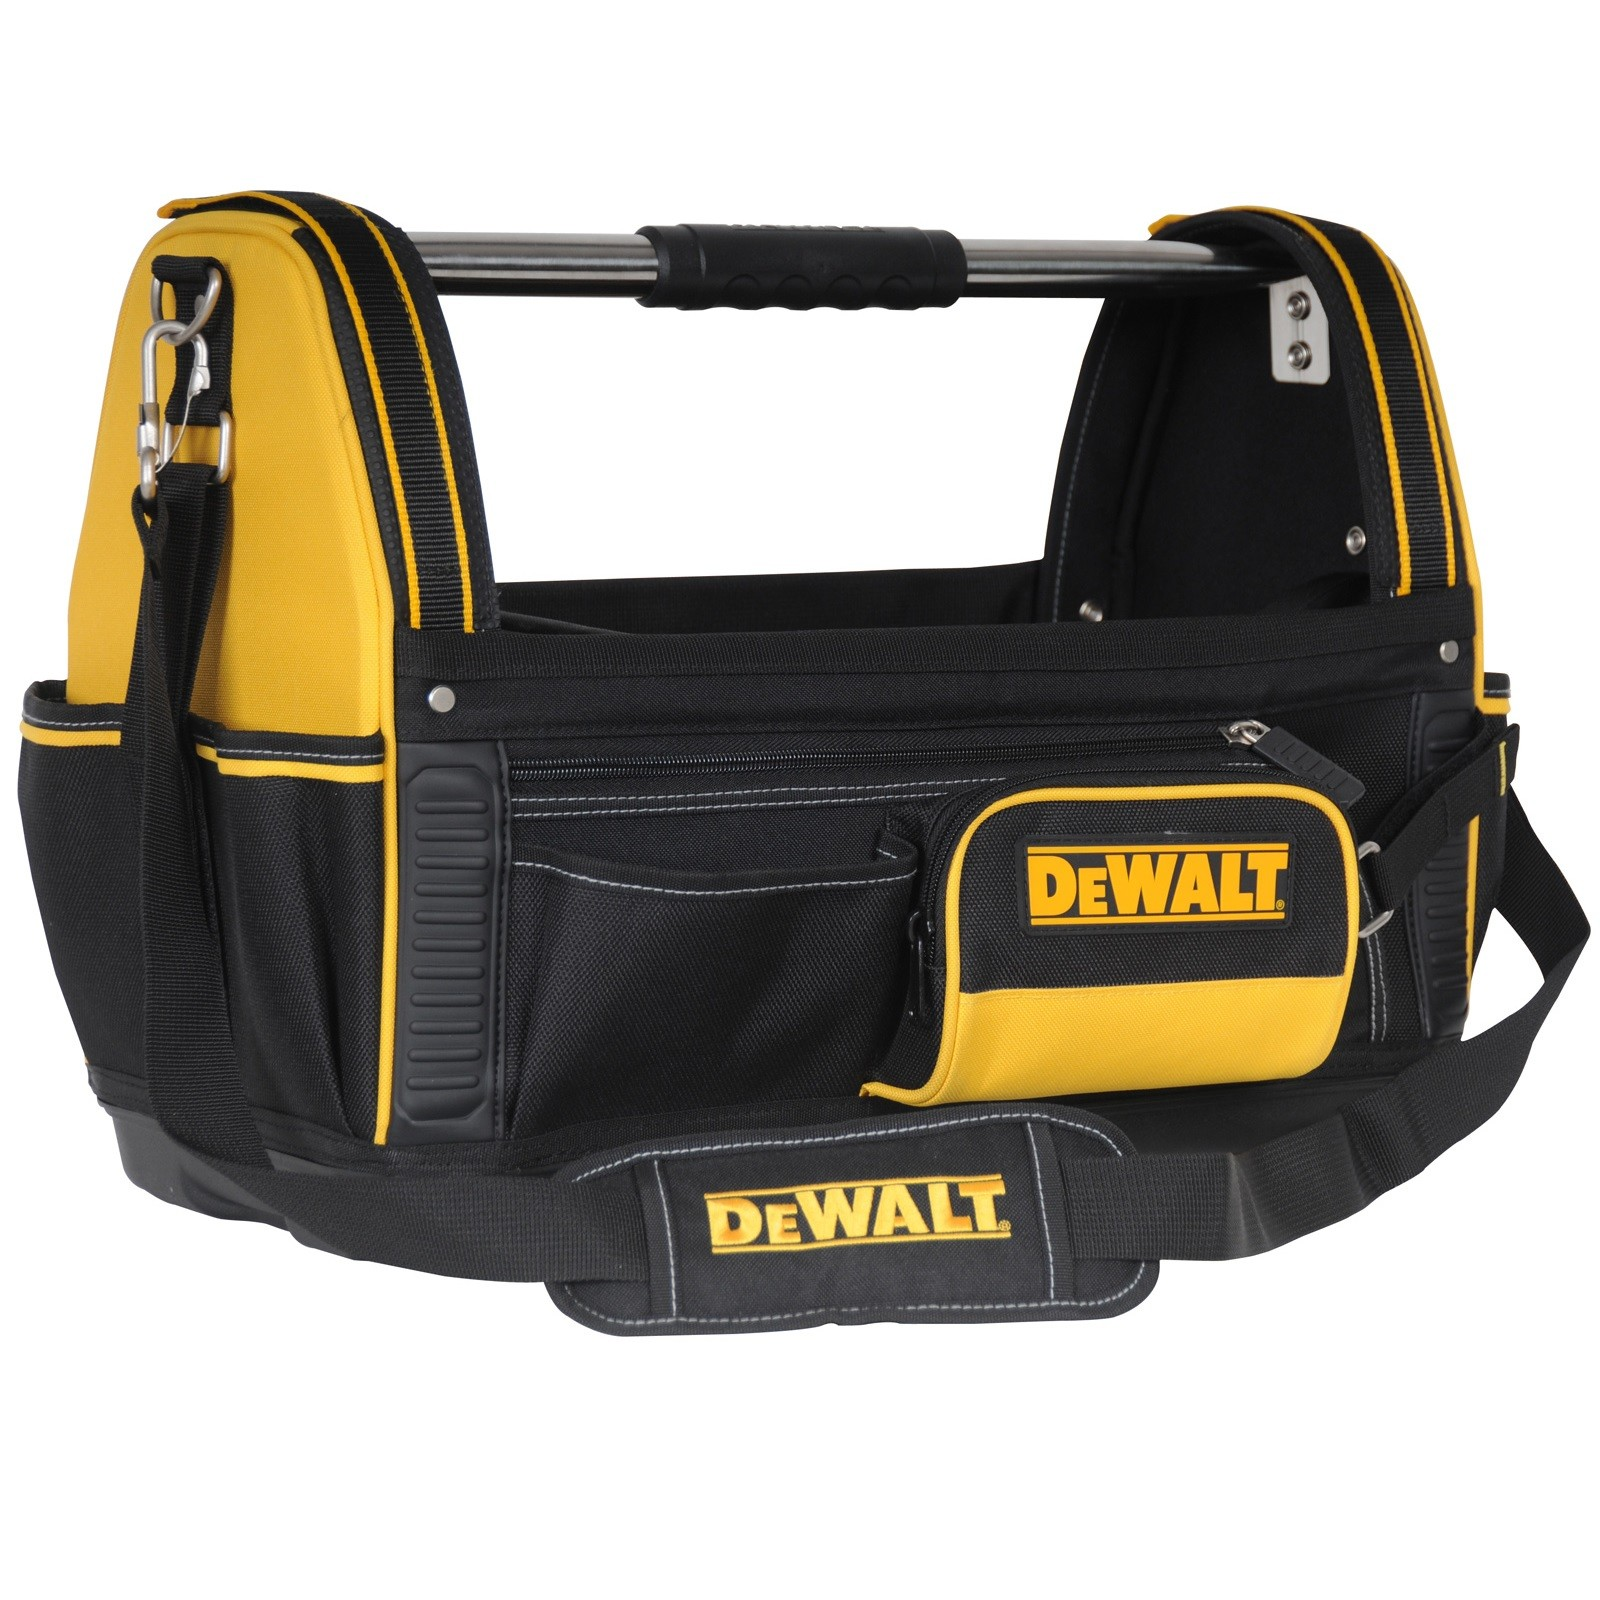 DeWalt 1-79-208 Open Tote Tool Bag 18""